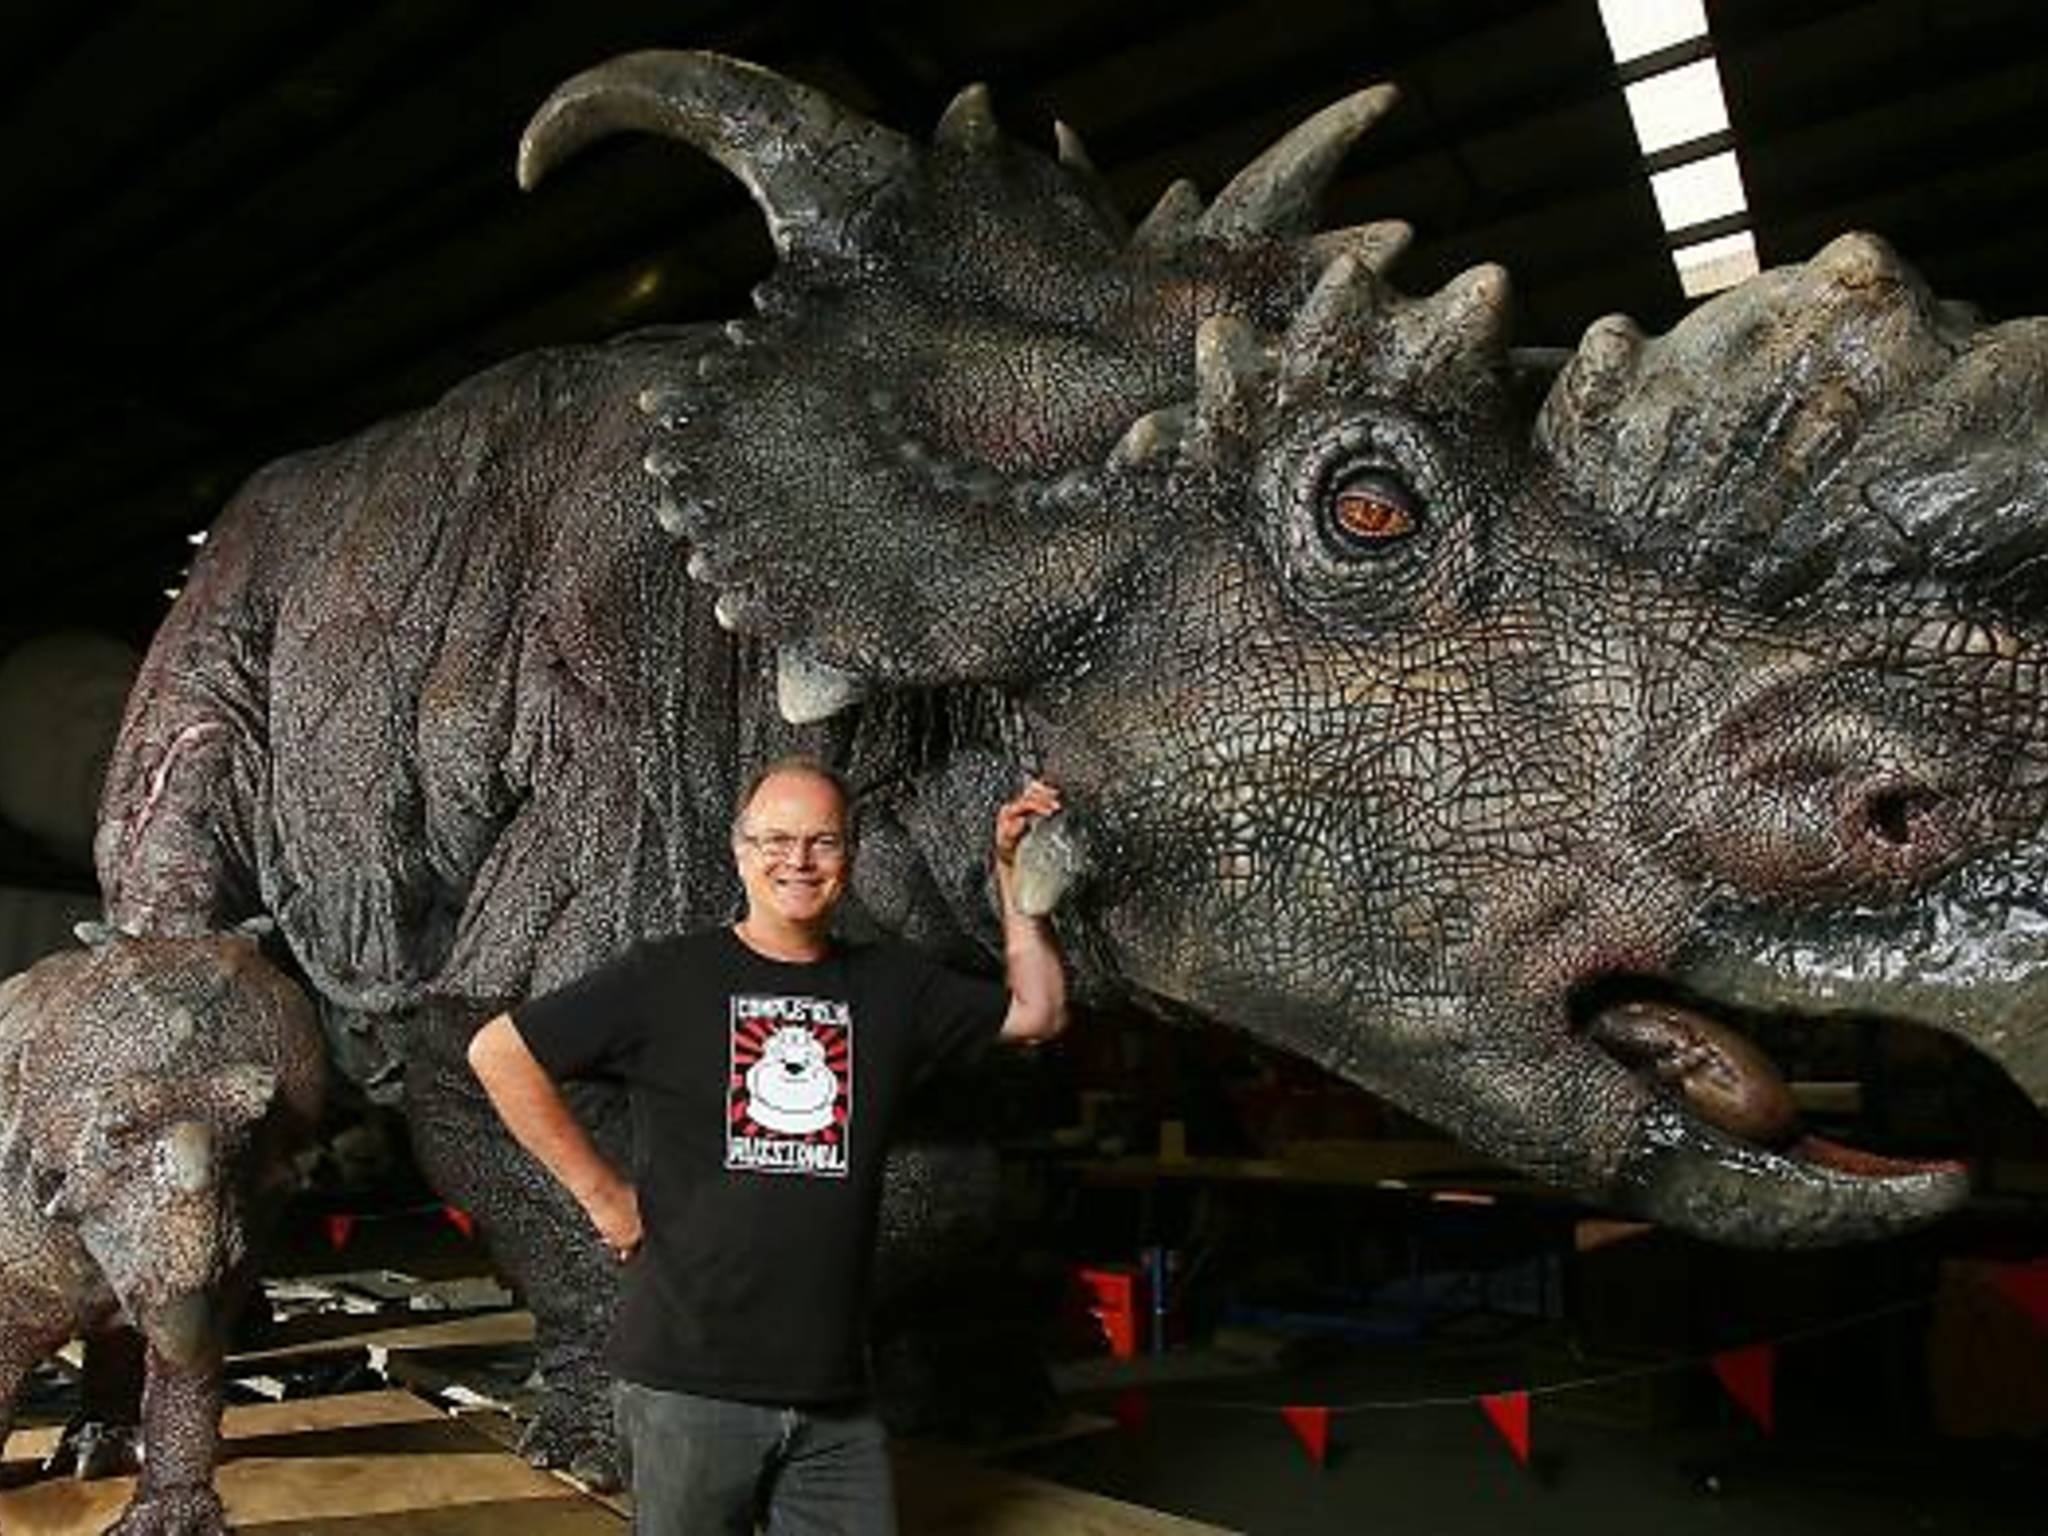 James Millar with pachyrhinosaurus